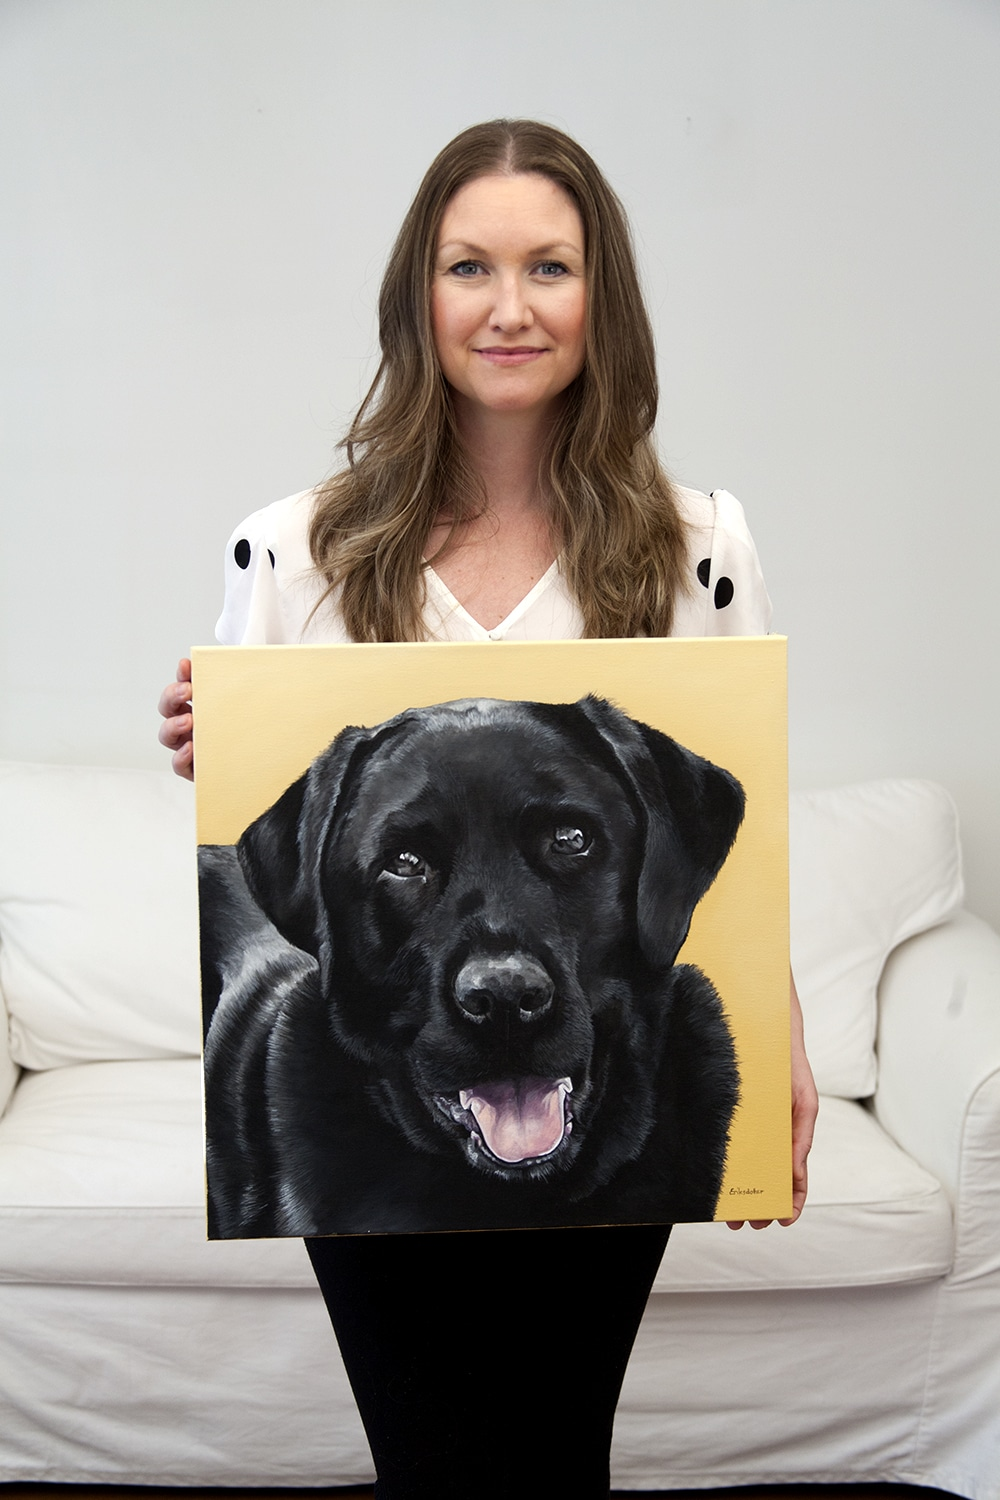 Erica Eriksdotter holding her custom dog portrait of a black labrador